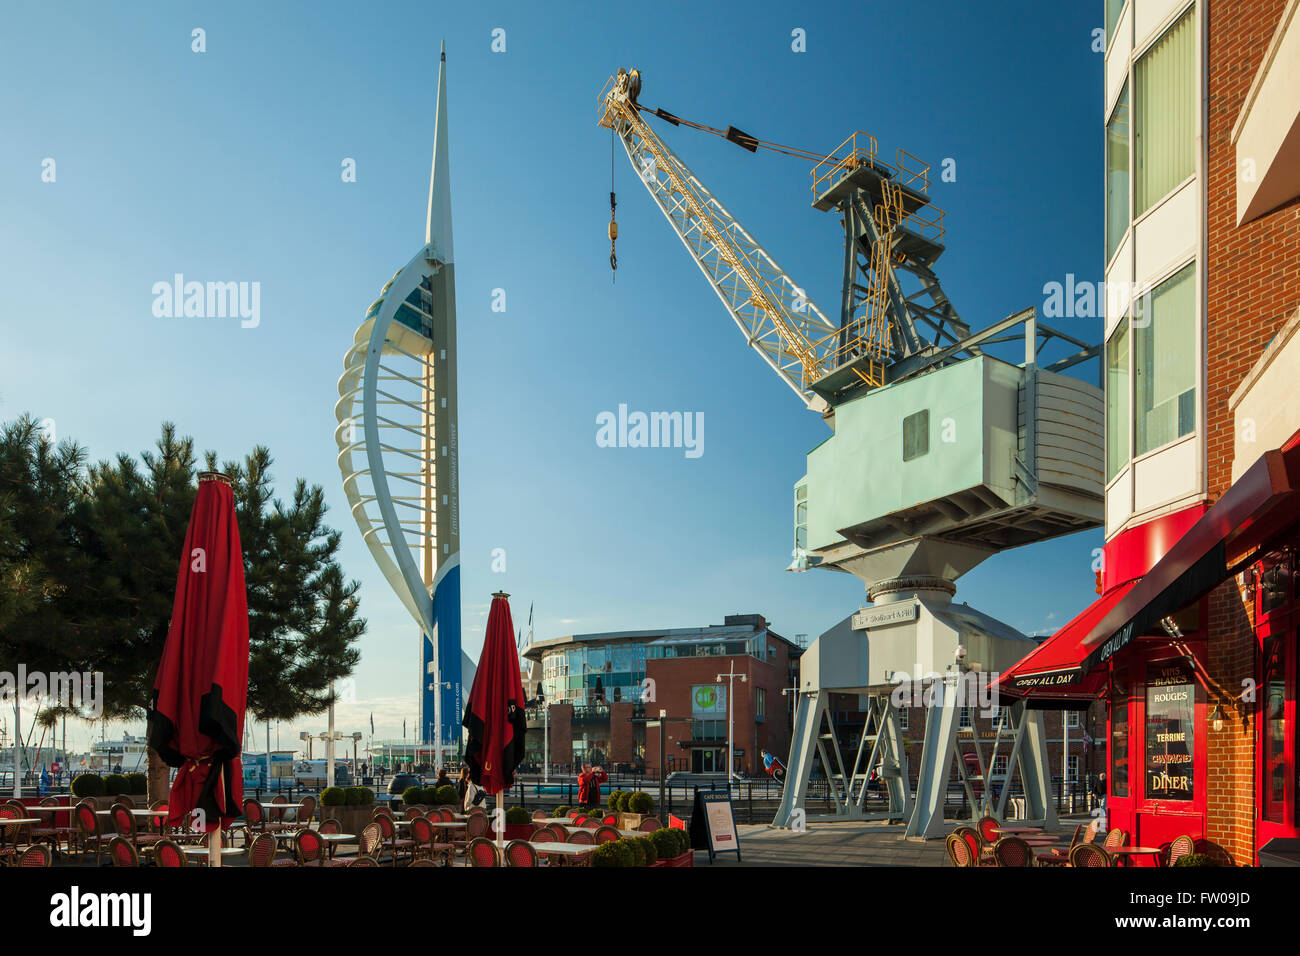 Sunny day in Portsmouth, UK. Spinnaker Tower in the distance. Stock Photo